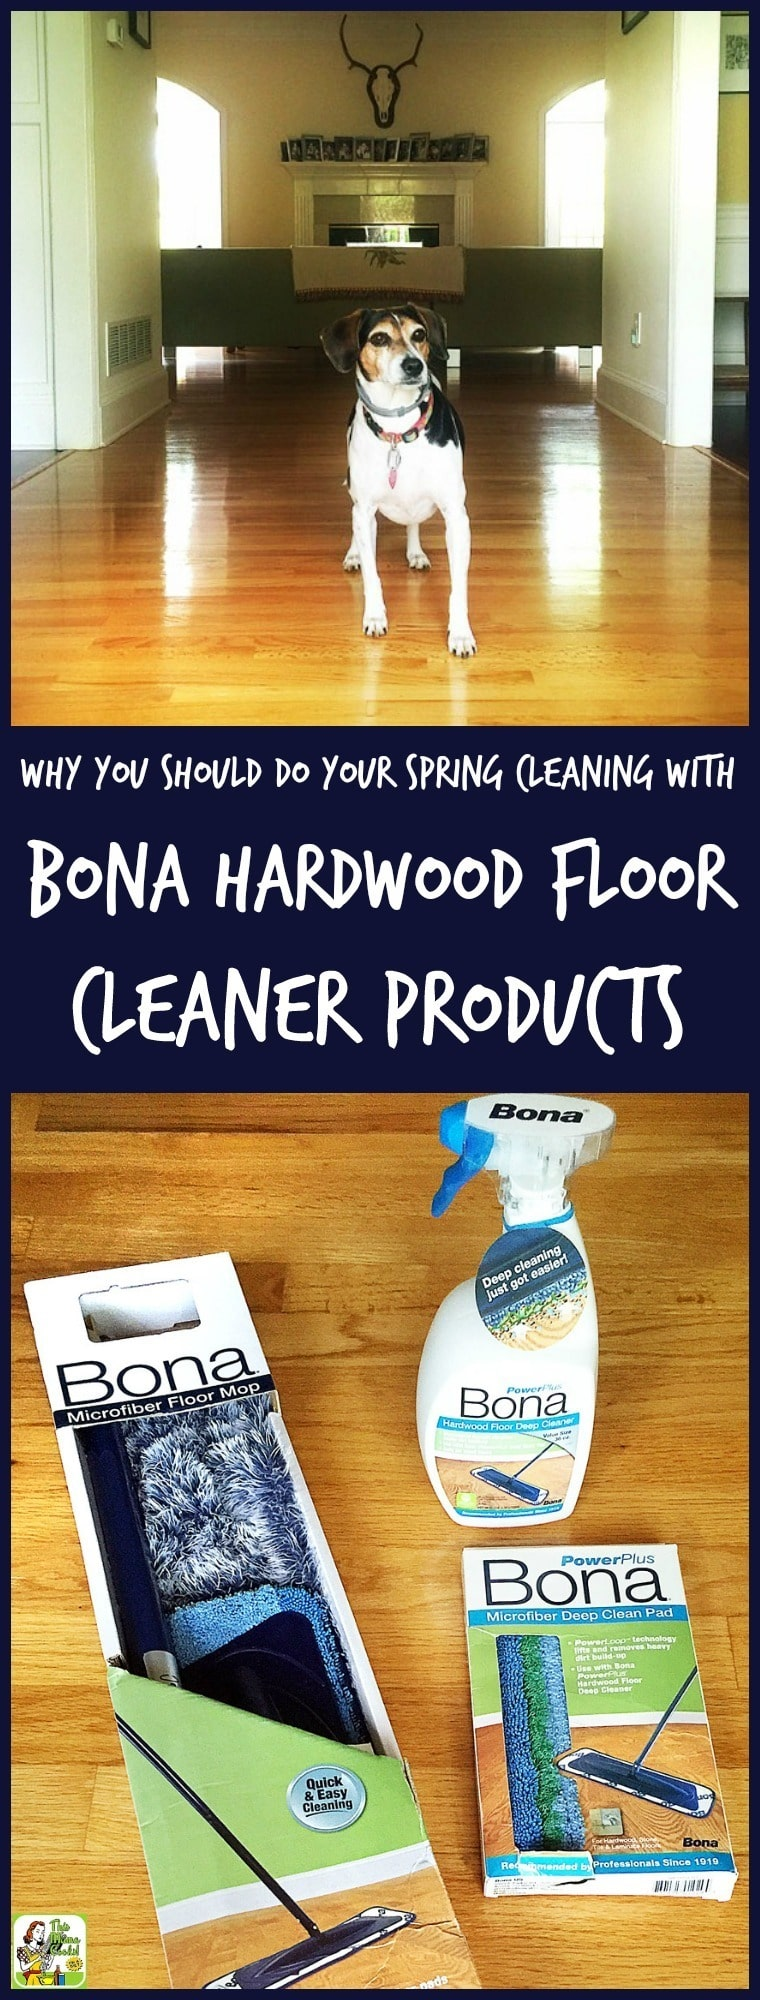 Got hardwood floors? Gorgeous clean floors are why you should do some spring cleaning with Bona hardwood floor cleaner products!